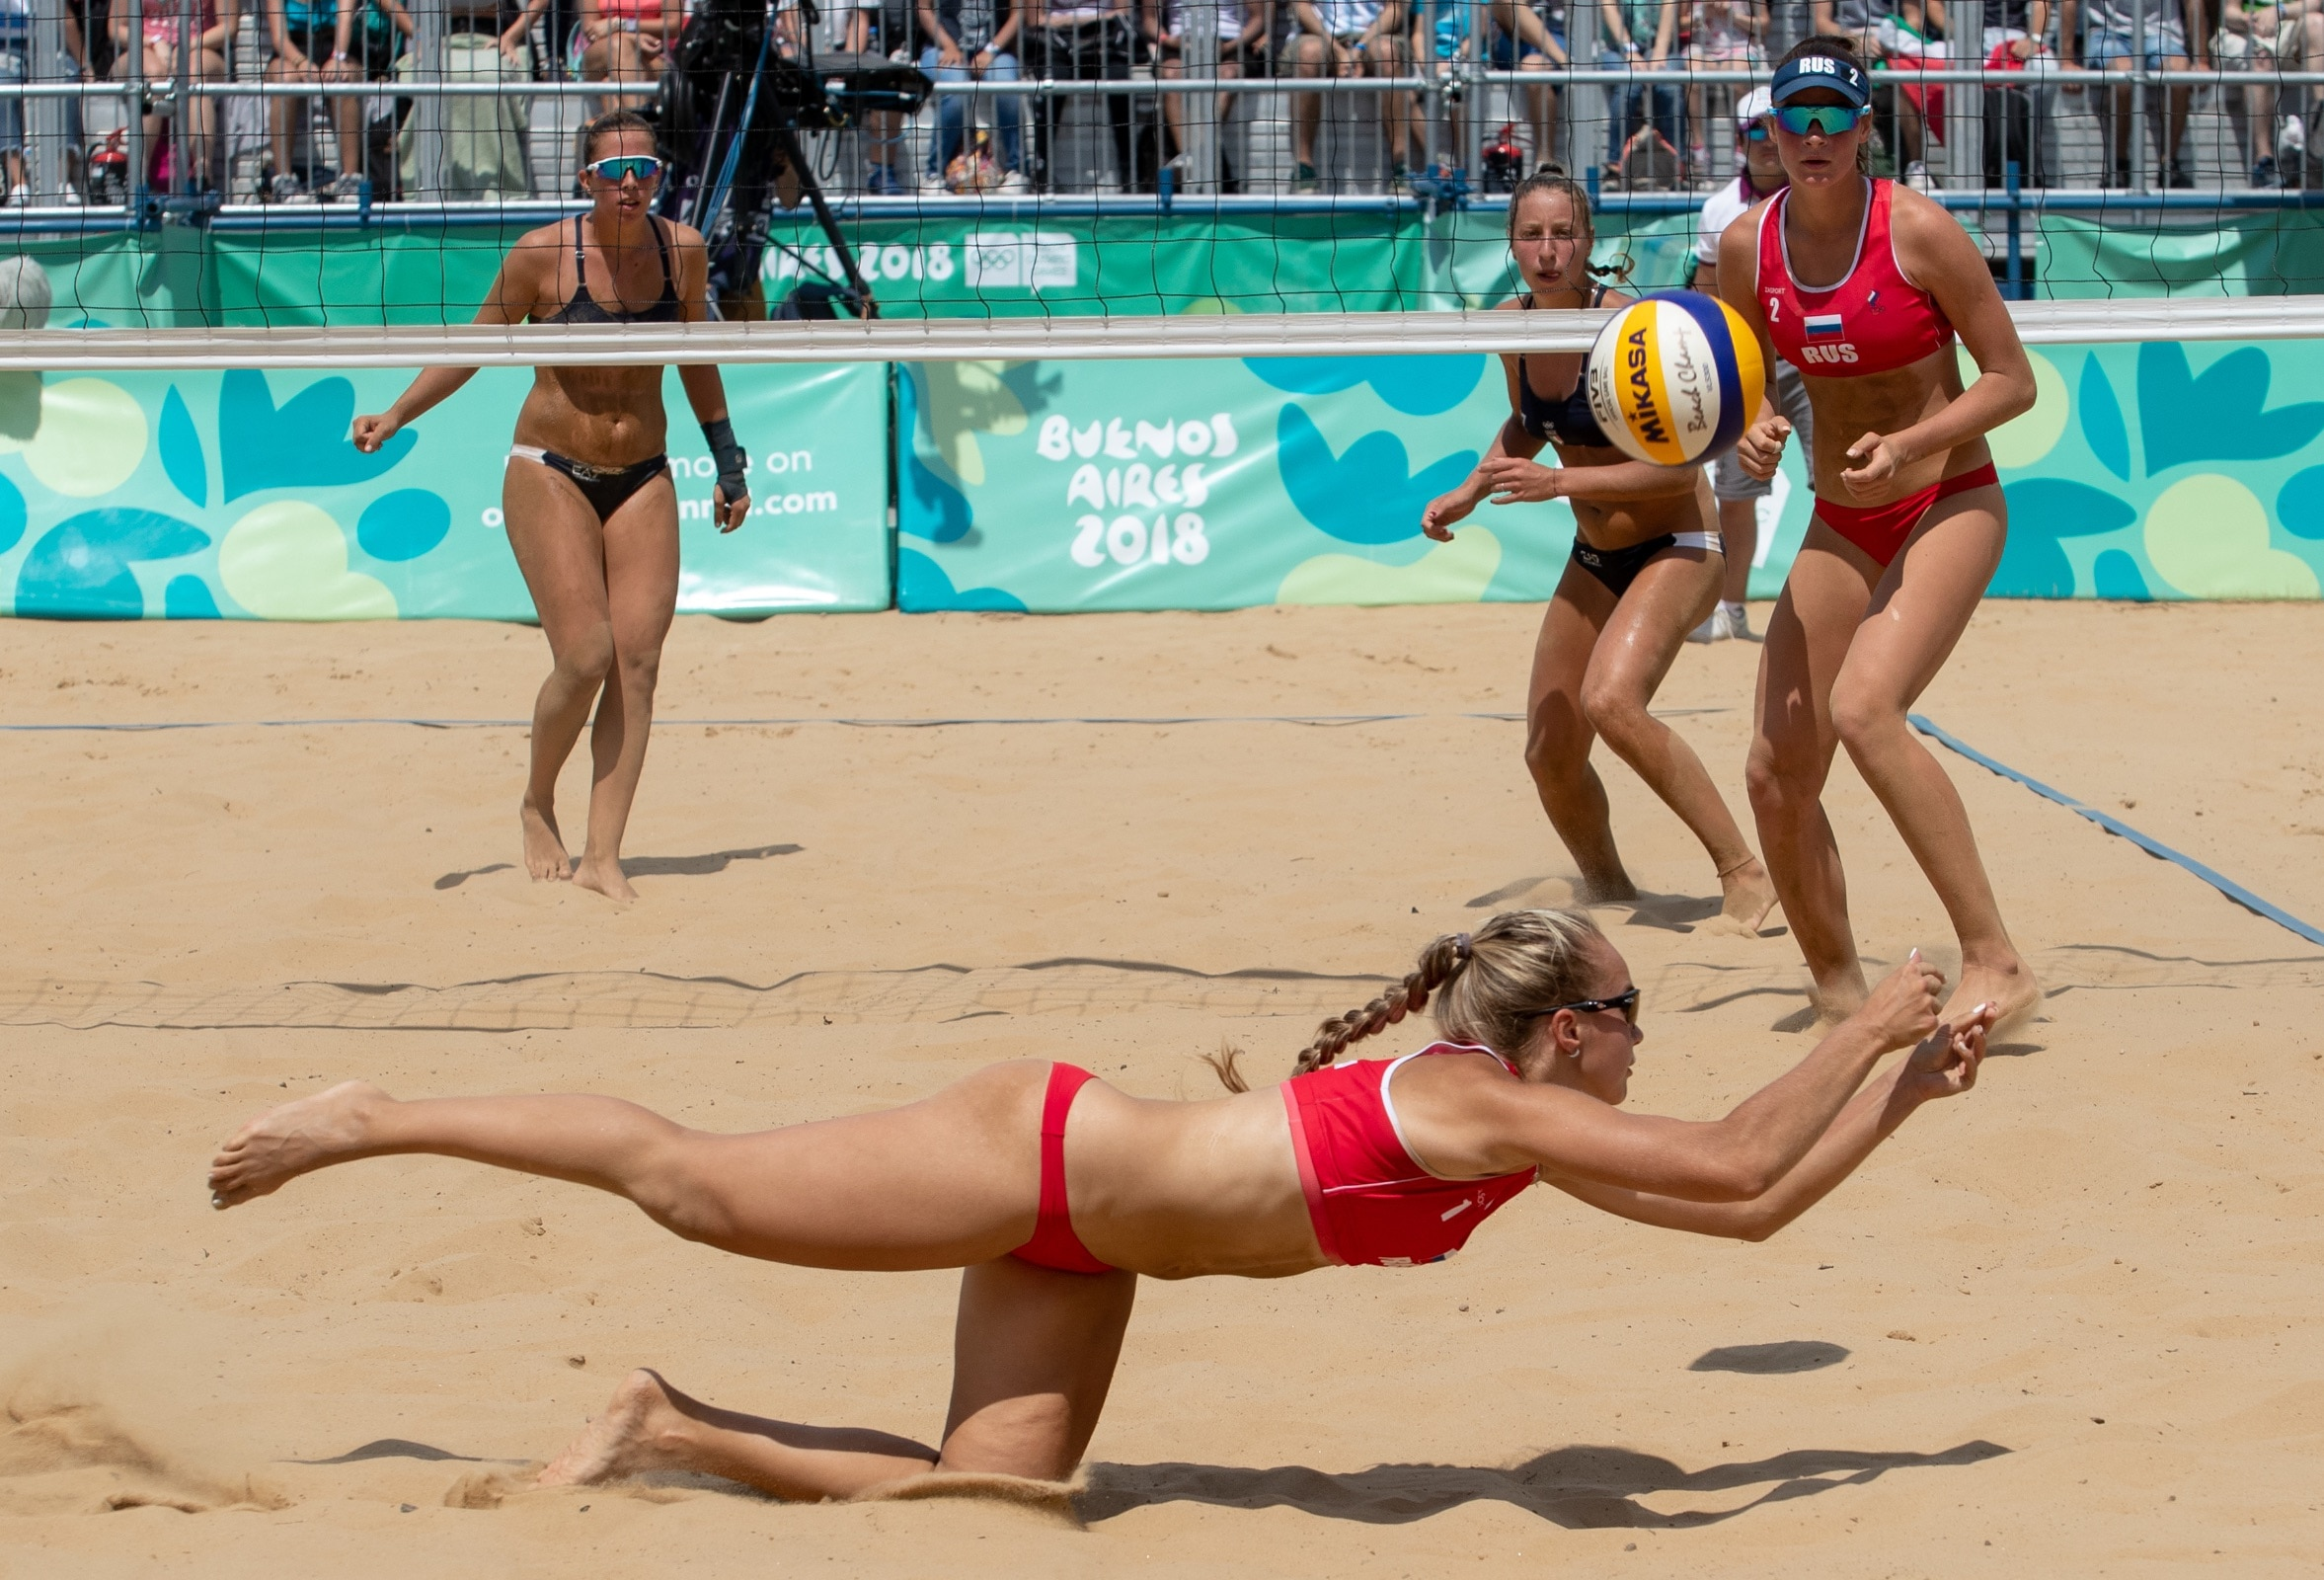 Buenos Aires 2018 - Beach Volleyball - Women's Tournament